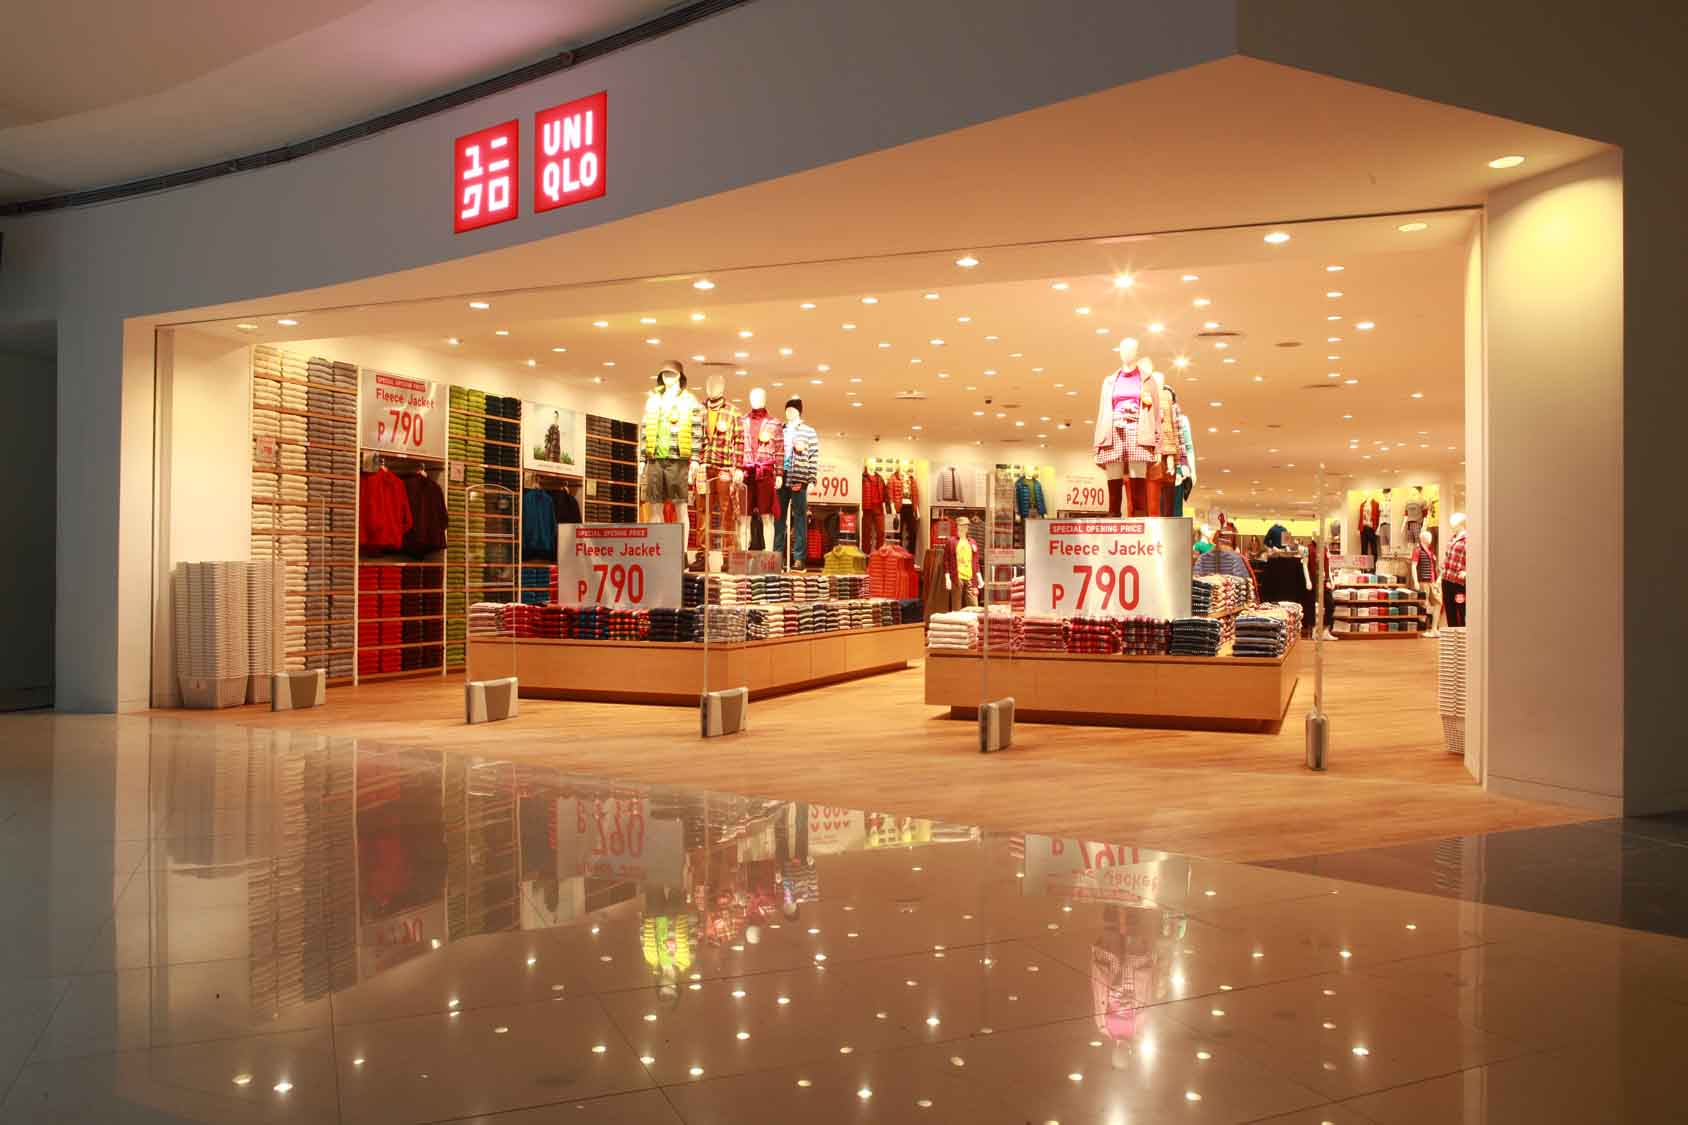 Uniqlo to open second store in the Philippines